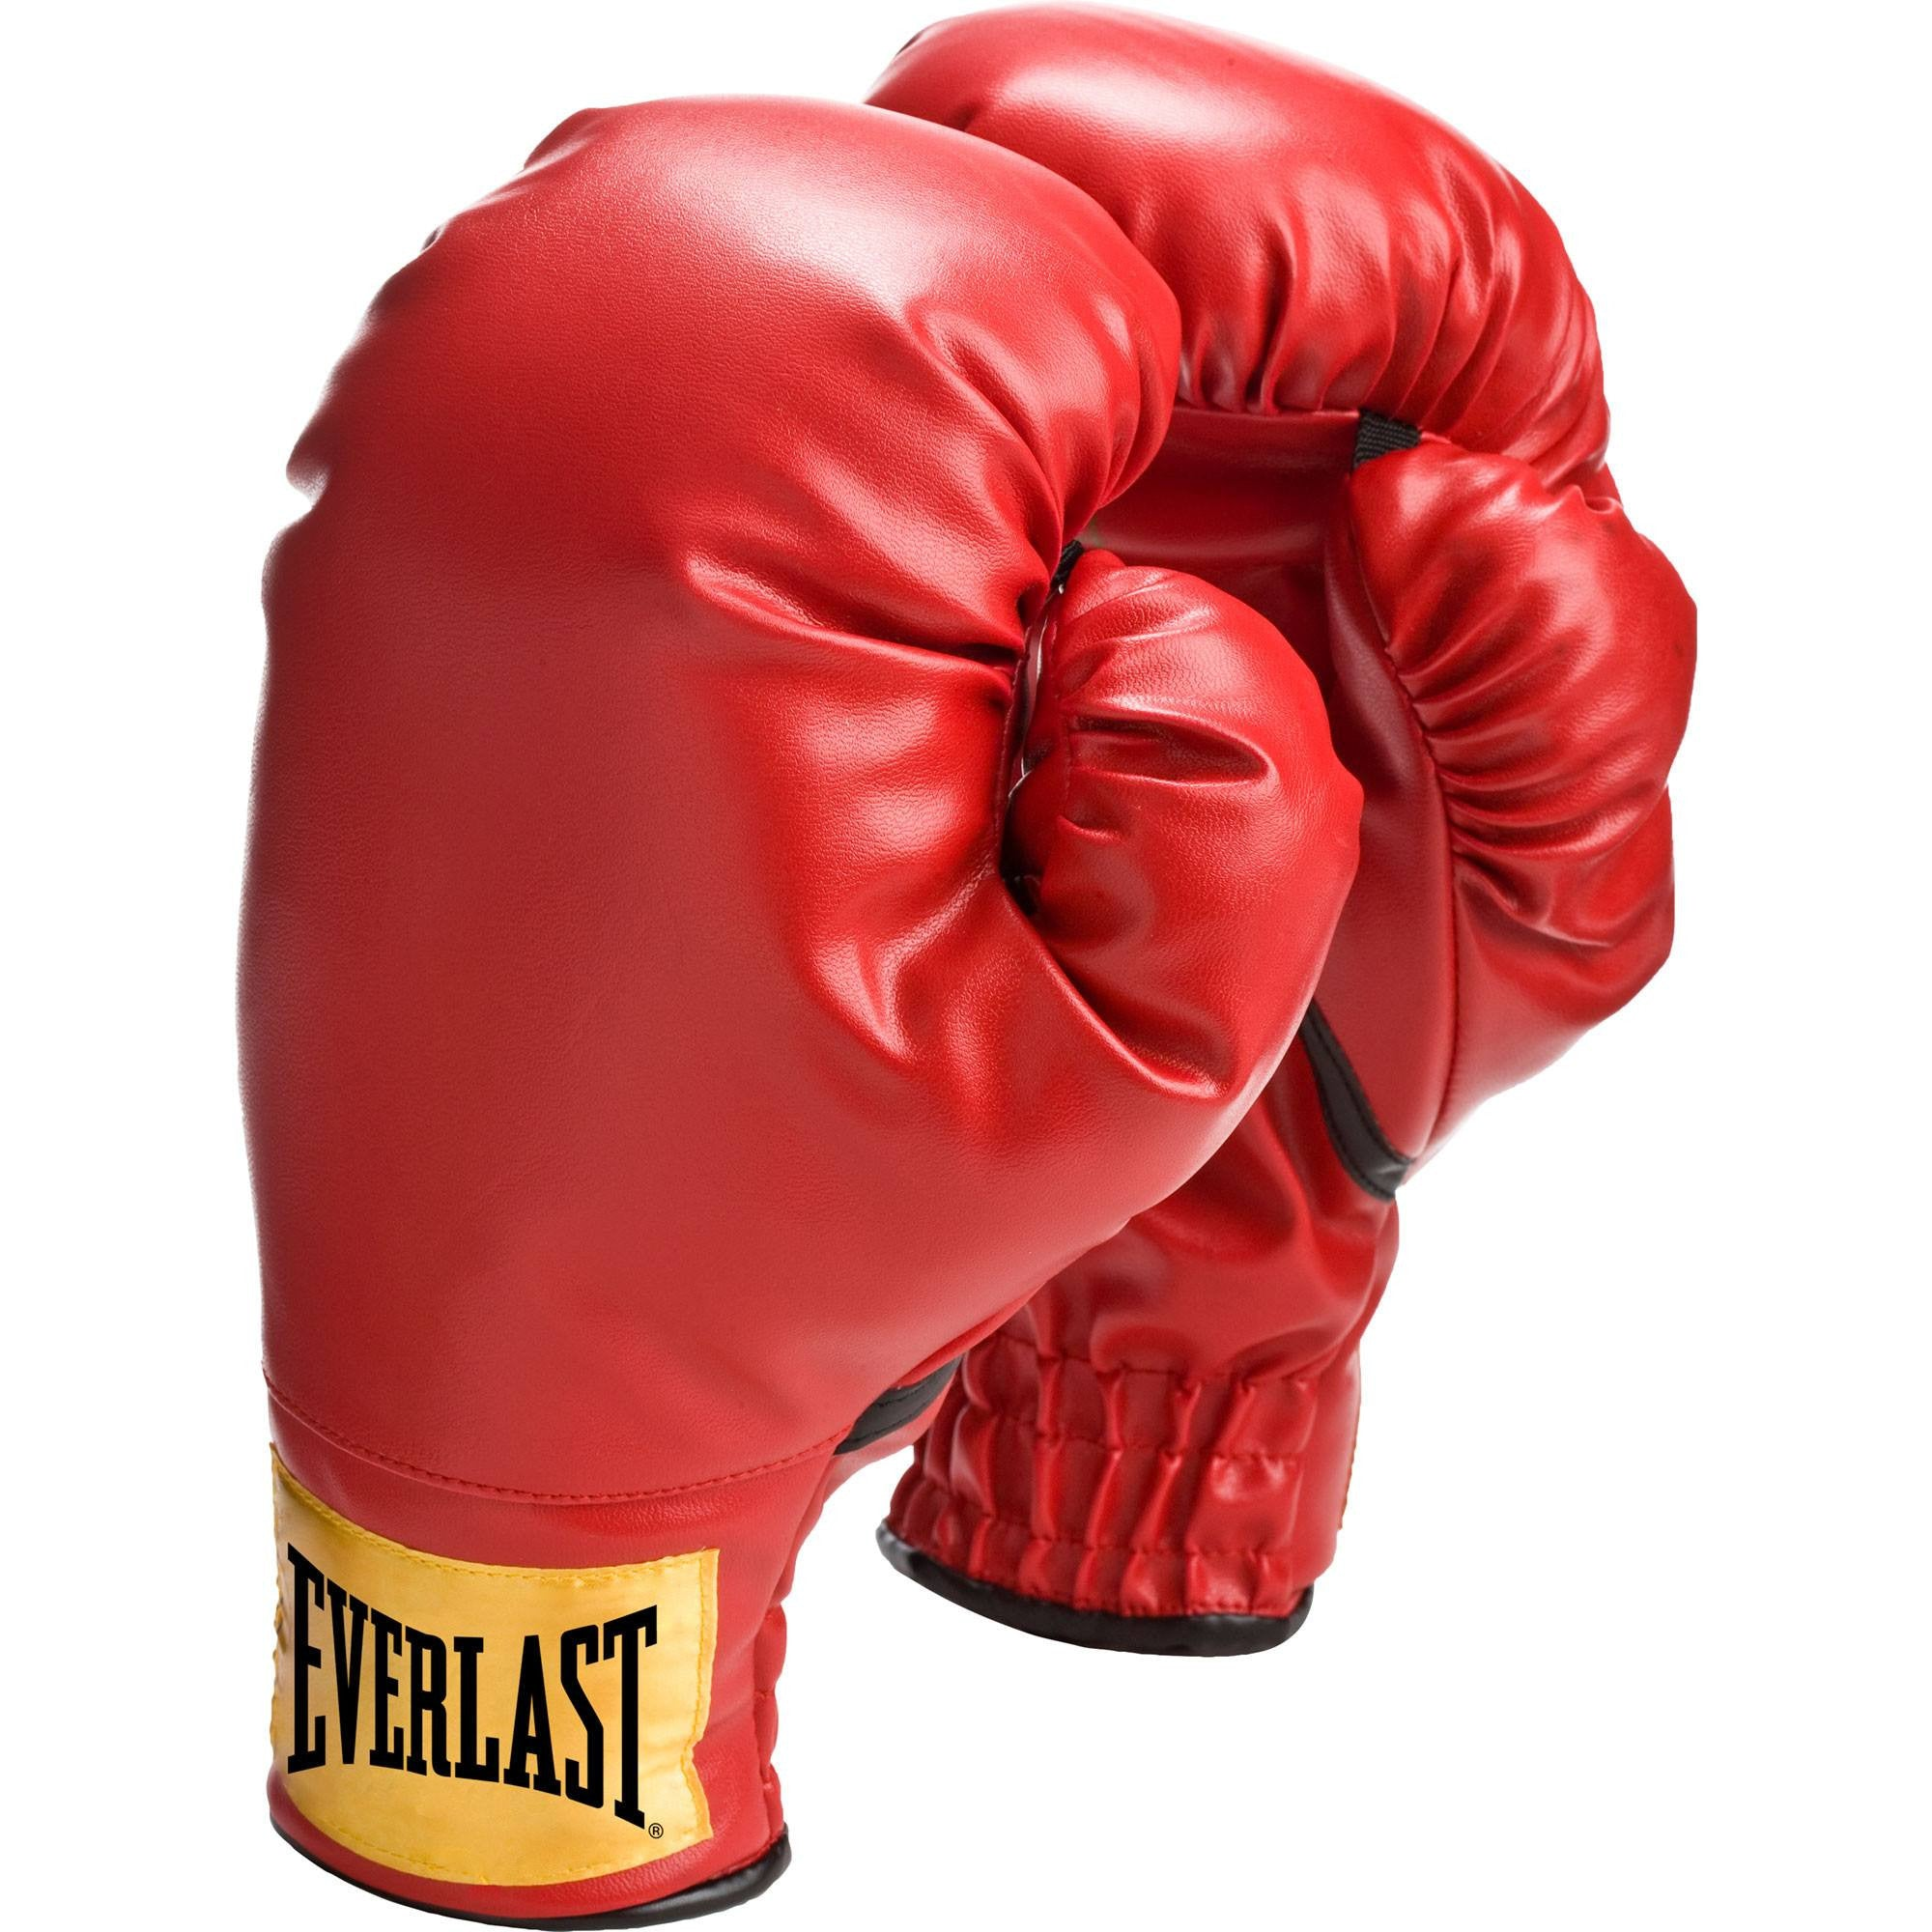 Everlast Small Laceless Boxing Gloves by Everlast Canada